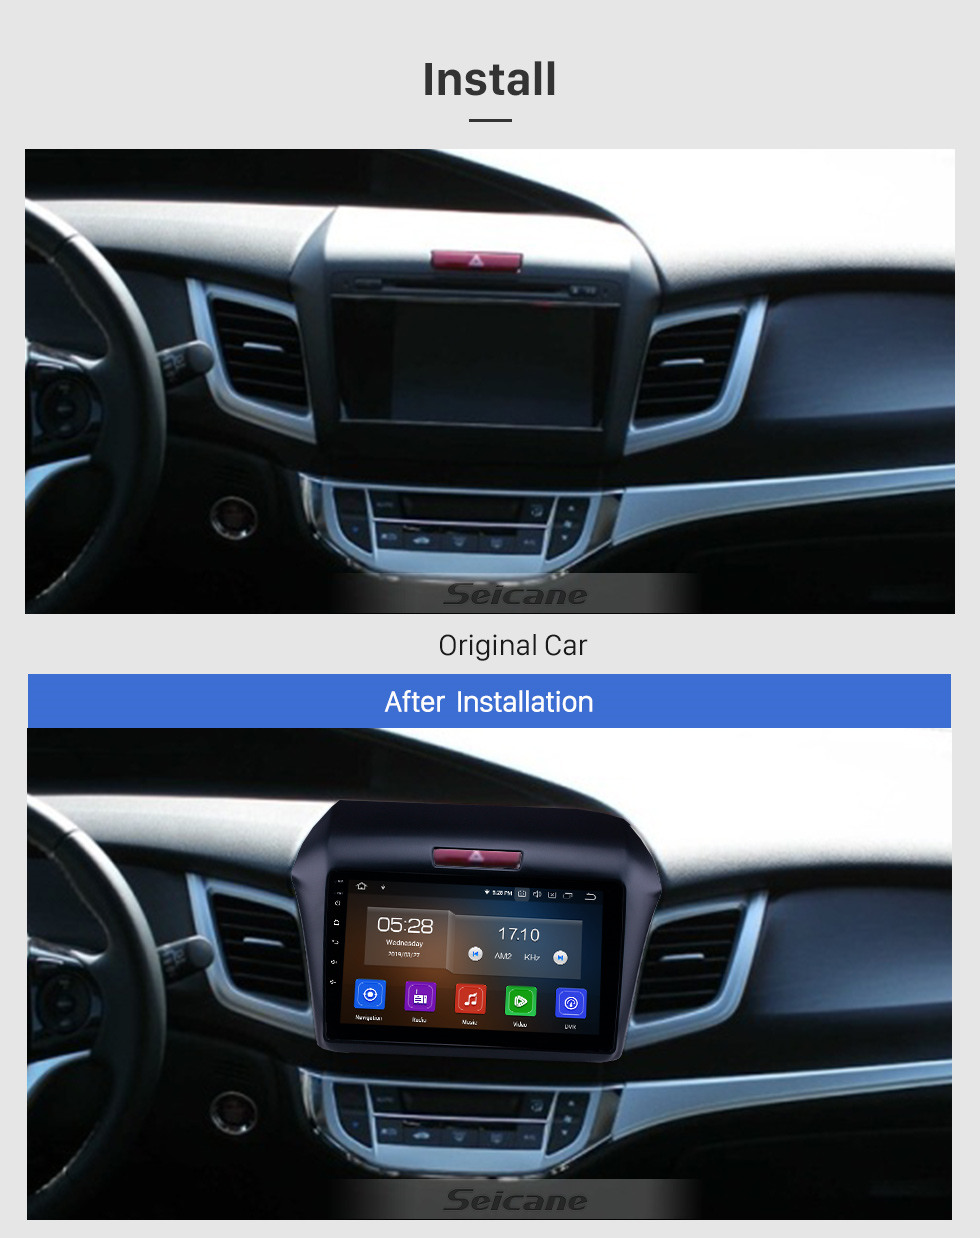 Seicane 9 inch Android 10.0 GPS Navigation Radio for 2013 Honda Jade with HD Touchscreen Carplay AUX WIFI Bluetooth support DVR OBD2 TPMS